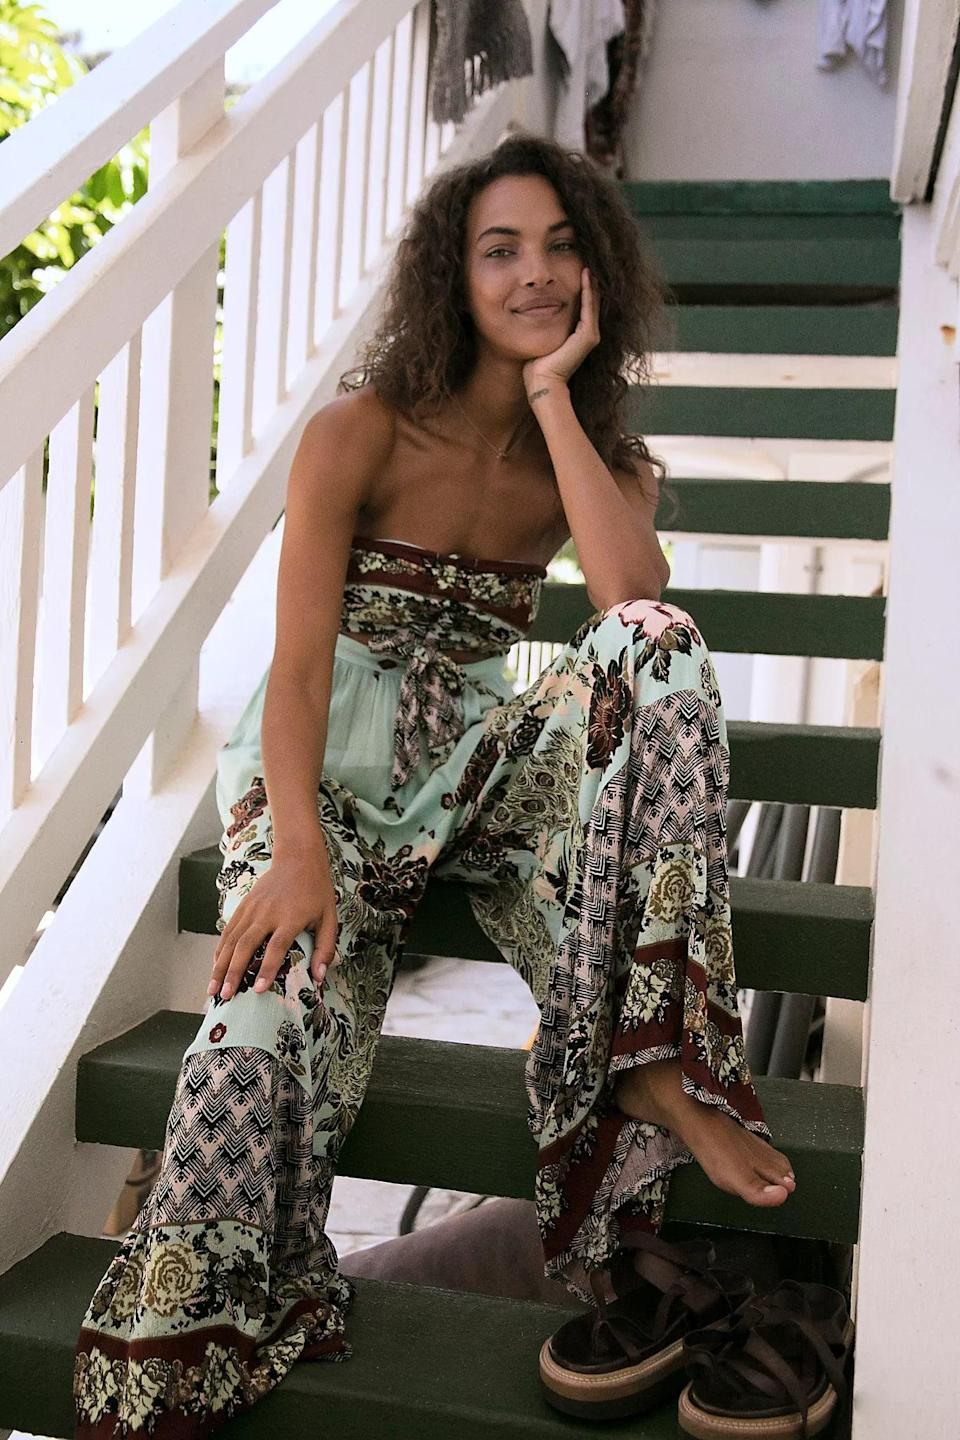 """<p>If you're looking for a printed choice, you can't go wrong with this comfy <a href=""""https://www.popsugar.com/buy/Bali-Birds-Paradise-One-Piece-579191?p_name=Bali%20Birds%20Of%20Paradise%20One%20Piece&retailer=freepeople.com&pid=579191&price=128&evar1=fab%3Aus&evar9=47524904&evar98=https%3A%2F%2Fwww.popsugar.com%2Ffashion%2Fphoto-gallery%2F47524904%2Fimage%2F47525076%2FBali-Birds-Paradise-One-Piece&list1=shopping%2Cjumpsuits%2Cfashion%20shopping%2Crompers%2Ccomfortable%20clothes&prop13=mobile&pdata=1"""" class=""""link rapid-noclick-resp"""" rel=""""nofollow noopener"""" target=""""_blank"""" data-ylk=""""slk:Bali Birds Of Paradise One Piece"""">Bali Birds Of Paradise One Piece</a> ($128).</p>"""